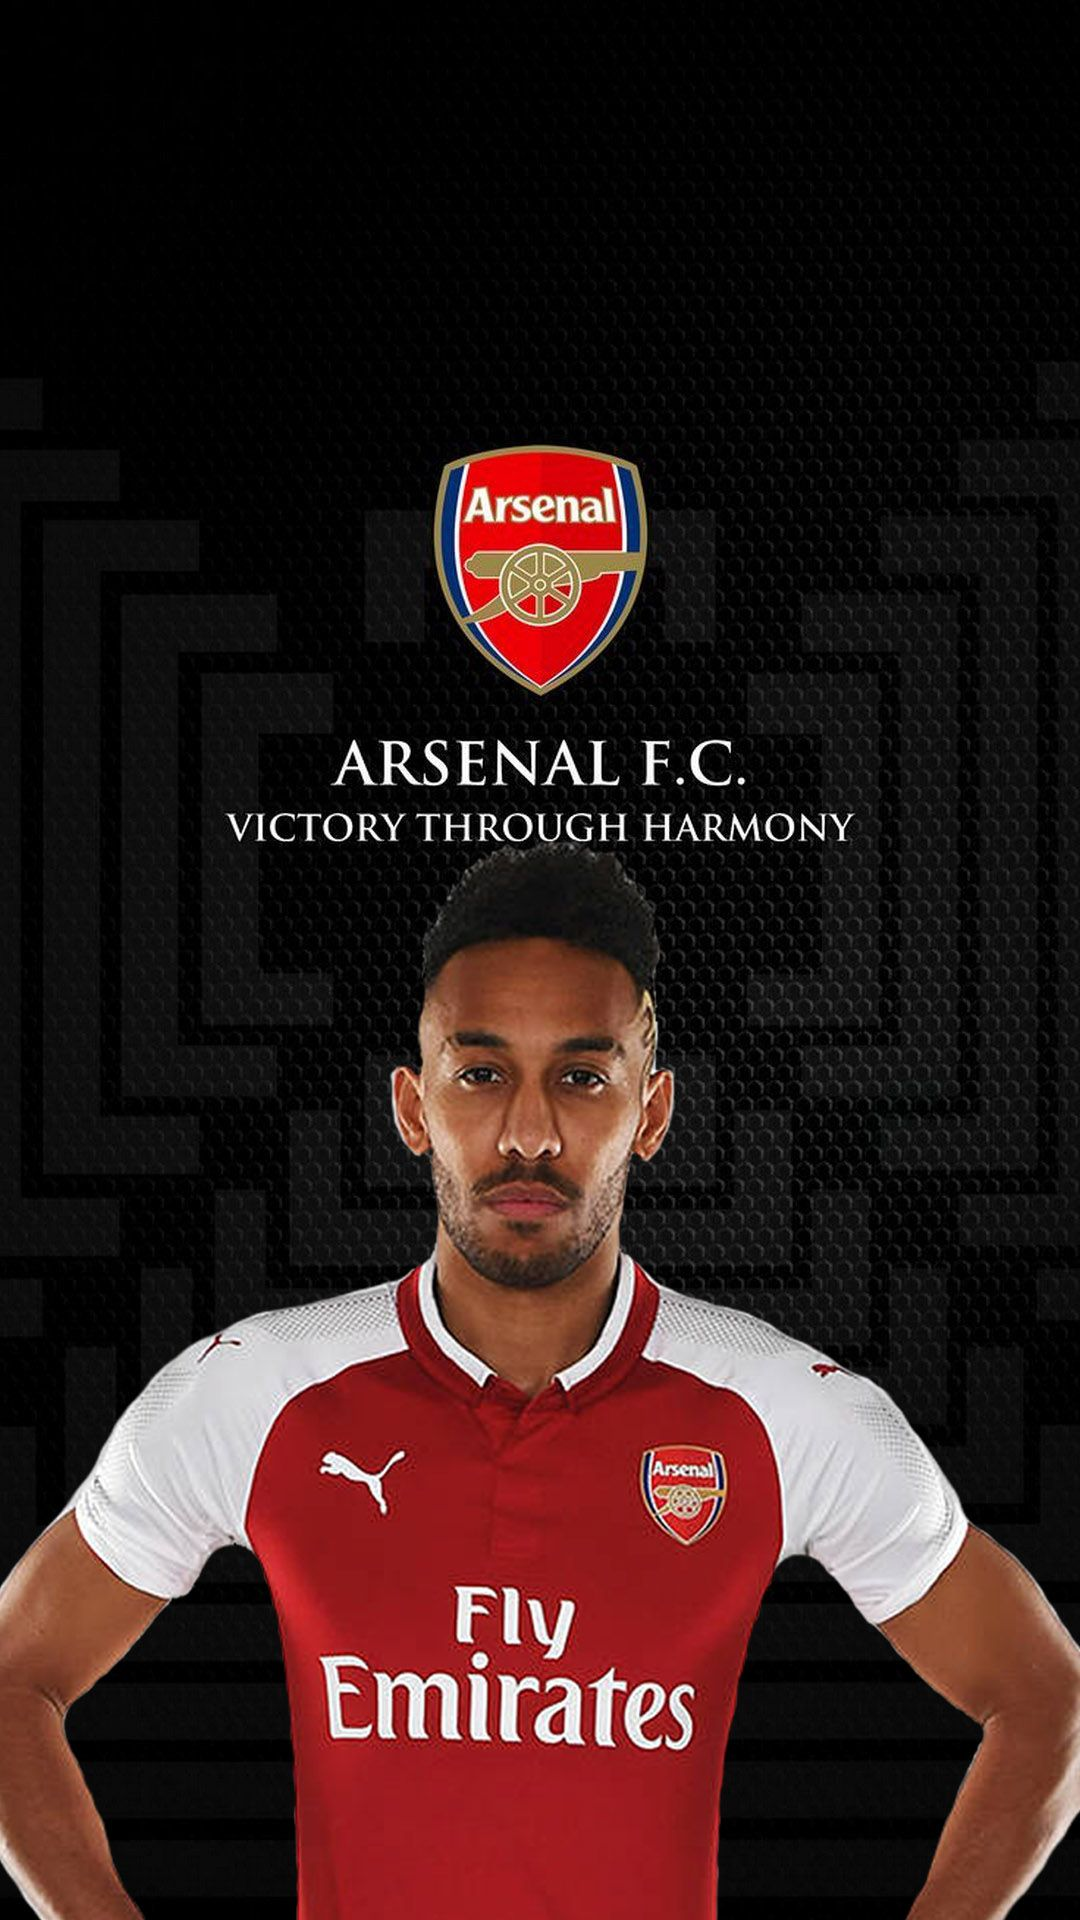 431678dc3 Pierre Emerick Aubameyang Arsenal Wallpaper Android - Best Android  Wallpapers